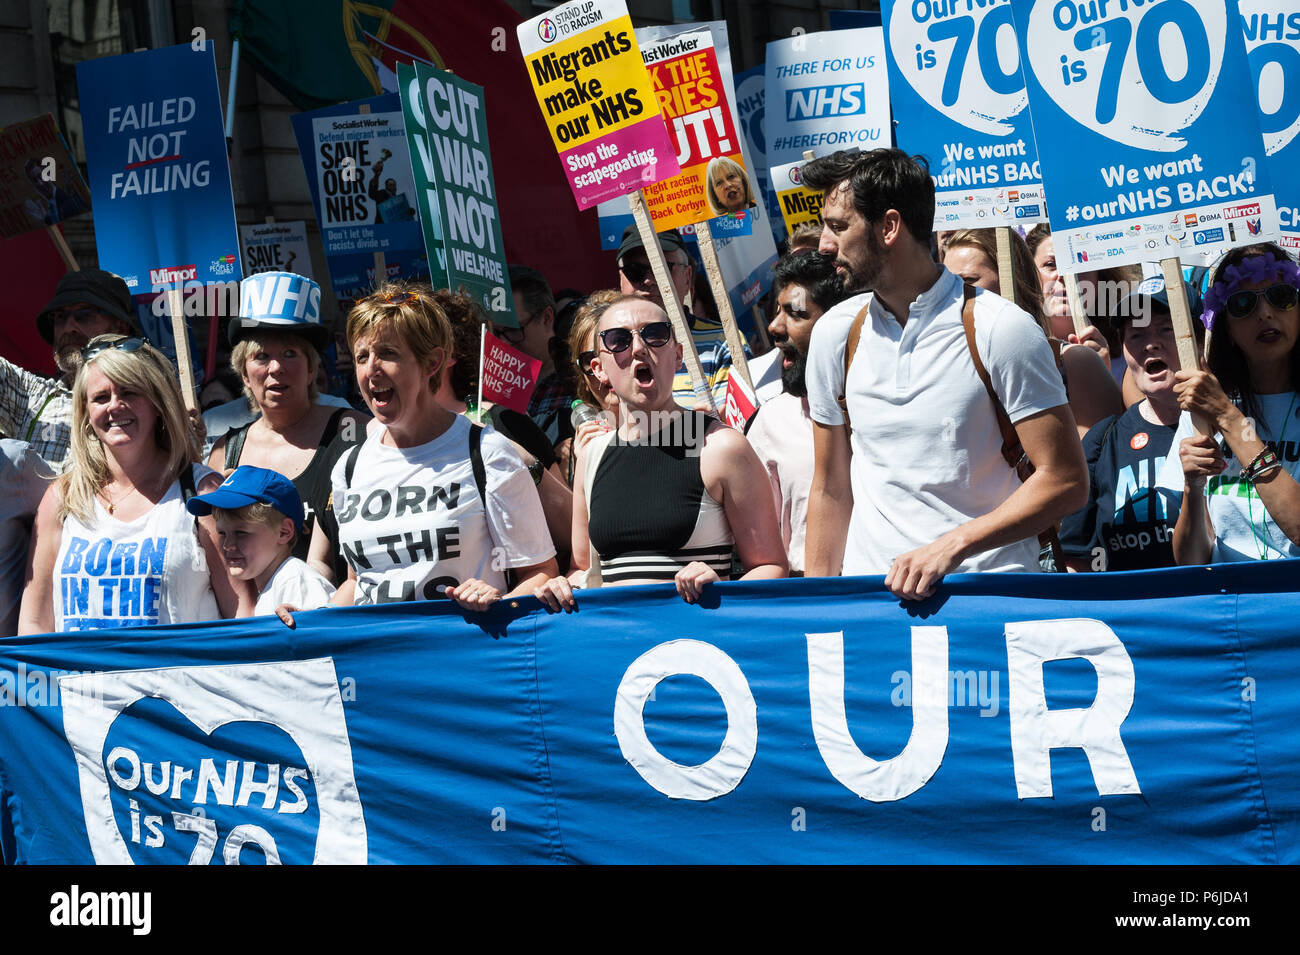 London, UK. 30th June, 2018. Actor Ralf Little (CR) joined thousands of demonstrators taking part in a march followed by a rally outside Downing Street in central London to celebrate the 70th anniversary of the National Health Service. Protesters call for an end to austerity policies which lead to underfunding and staff shortages in the NHS, and demand that it remains publicly owned and accessible to everyone. Credit: Wiktor Szymanowicz/Alamy Live News - Stock Image